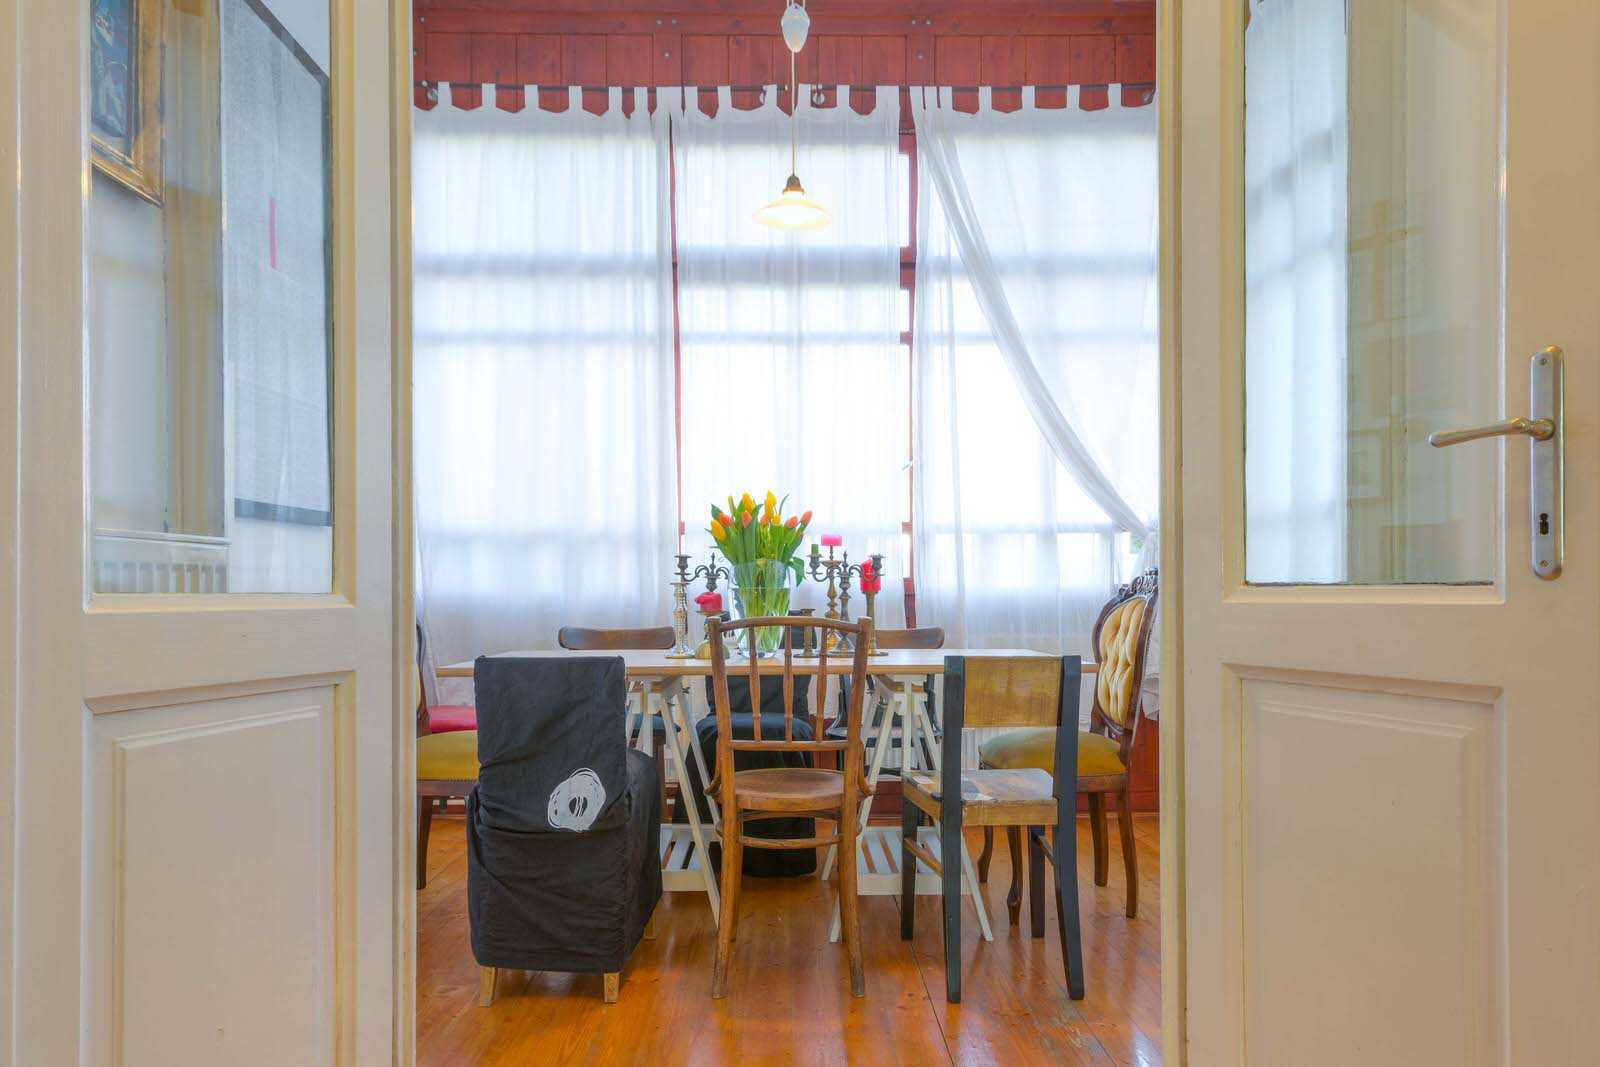 The dining room has tall windows providing the apartment with great daylight.